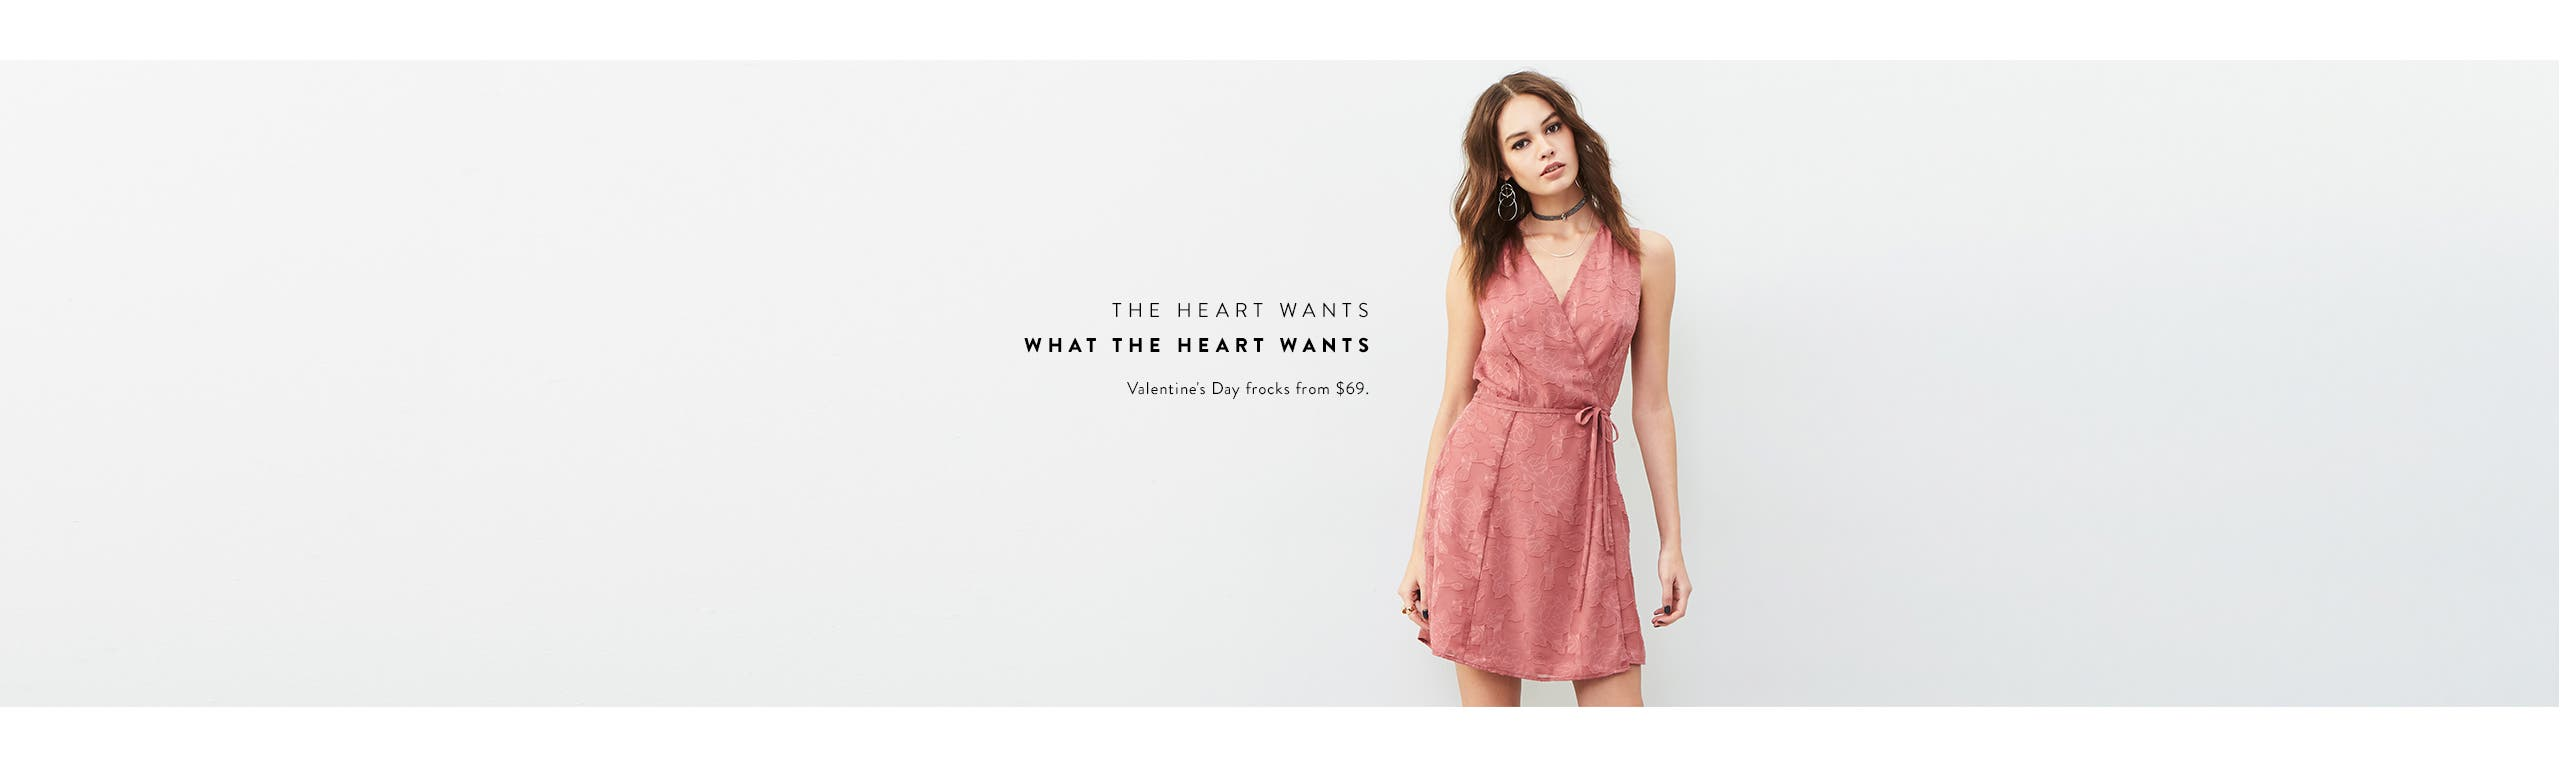 The heart wants what the heart wants. Dresses for Valentine's Day and more.